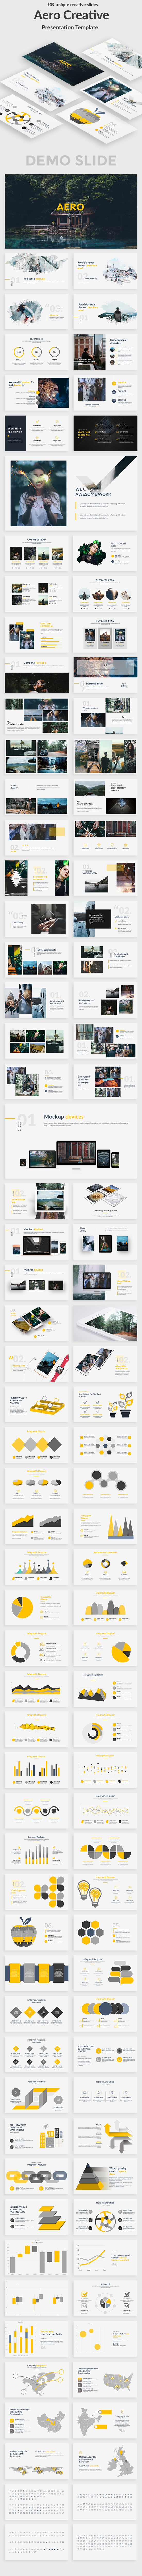 Aero Creative Google Slide Template - Google Slides Presentation Templates